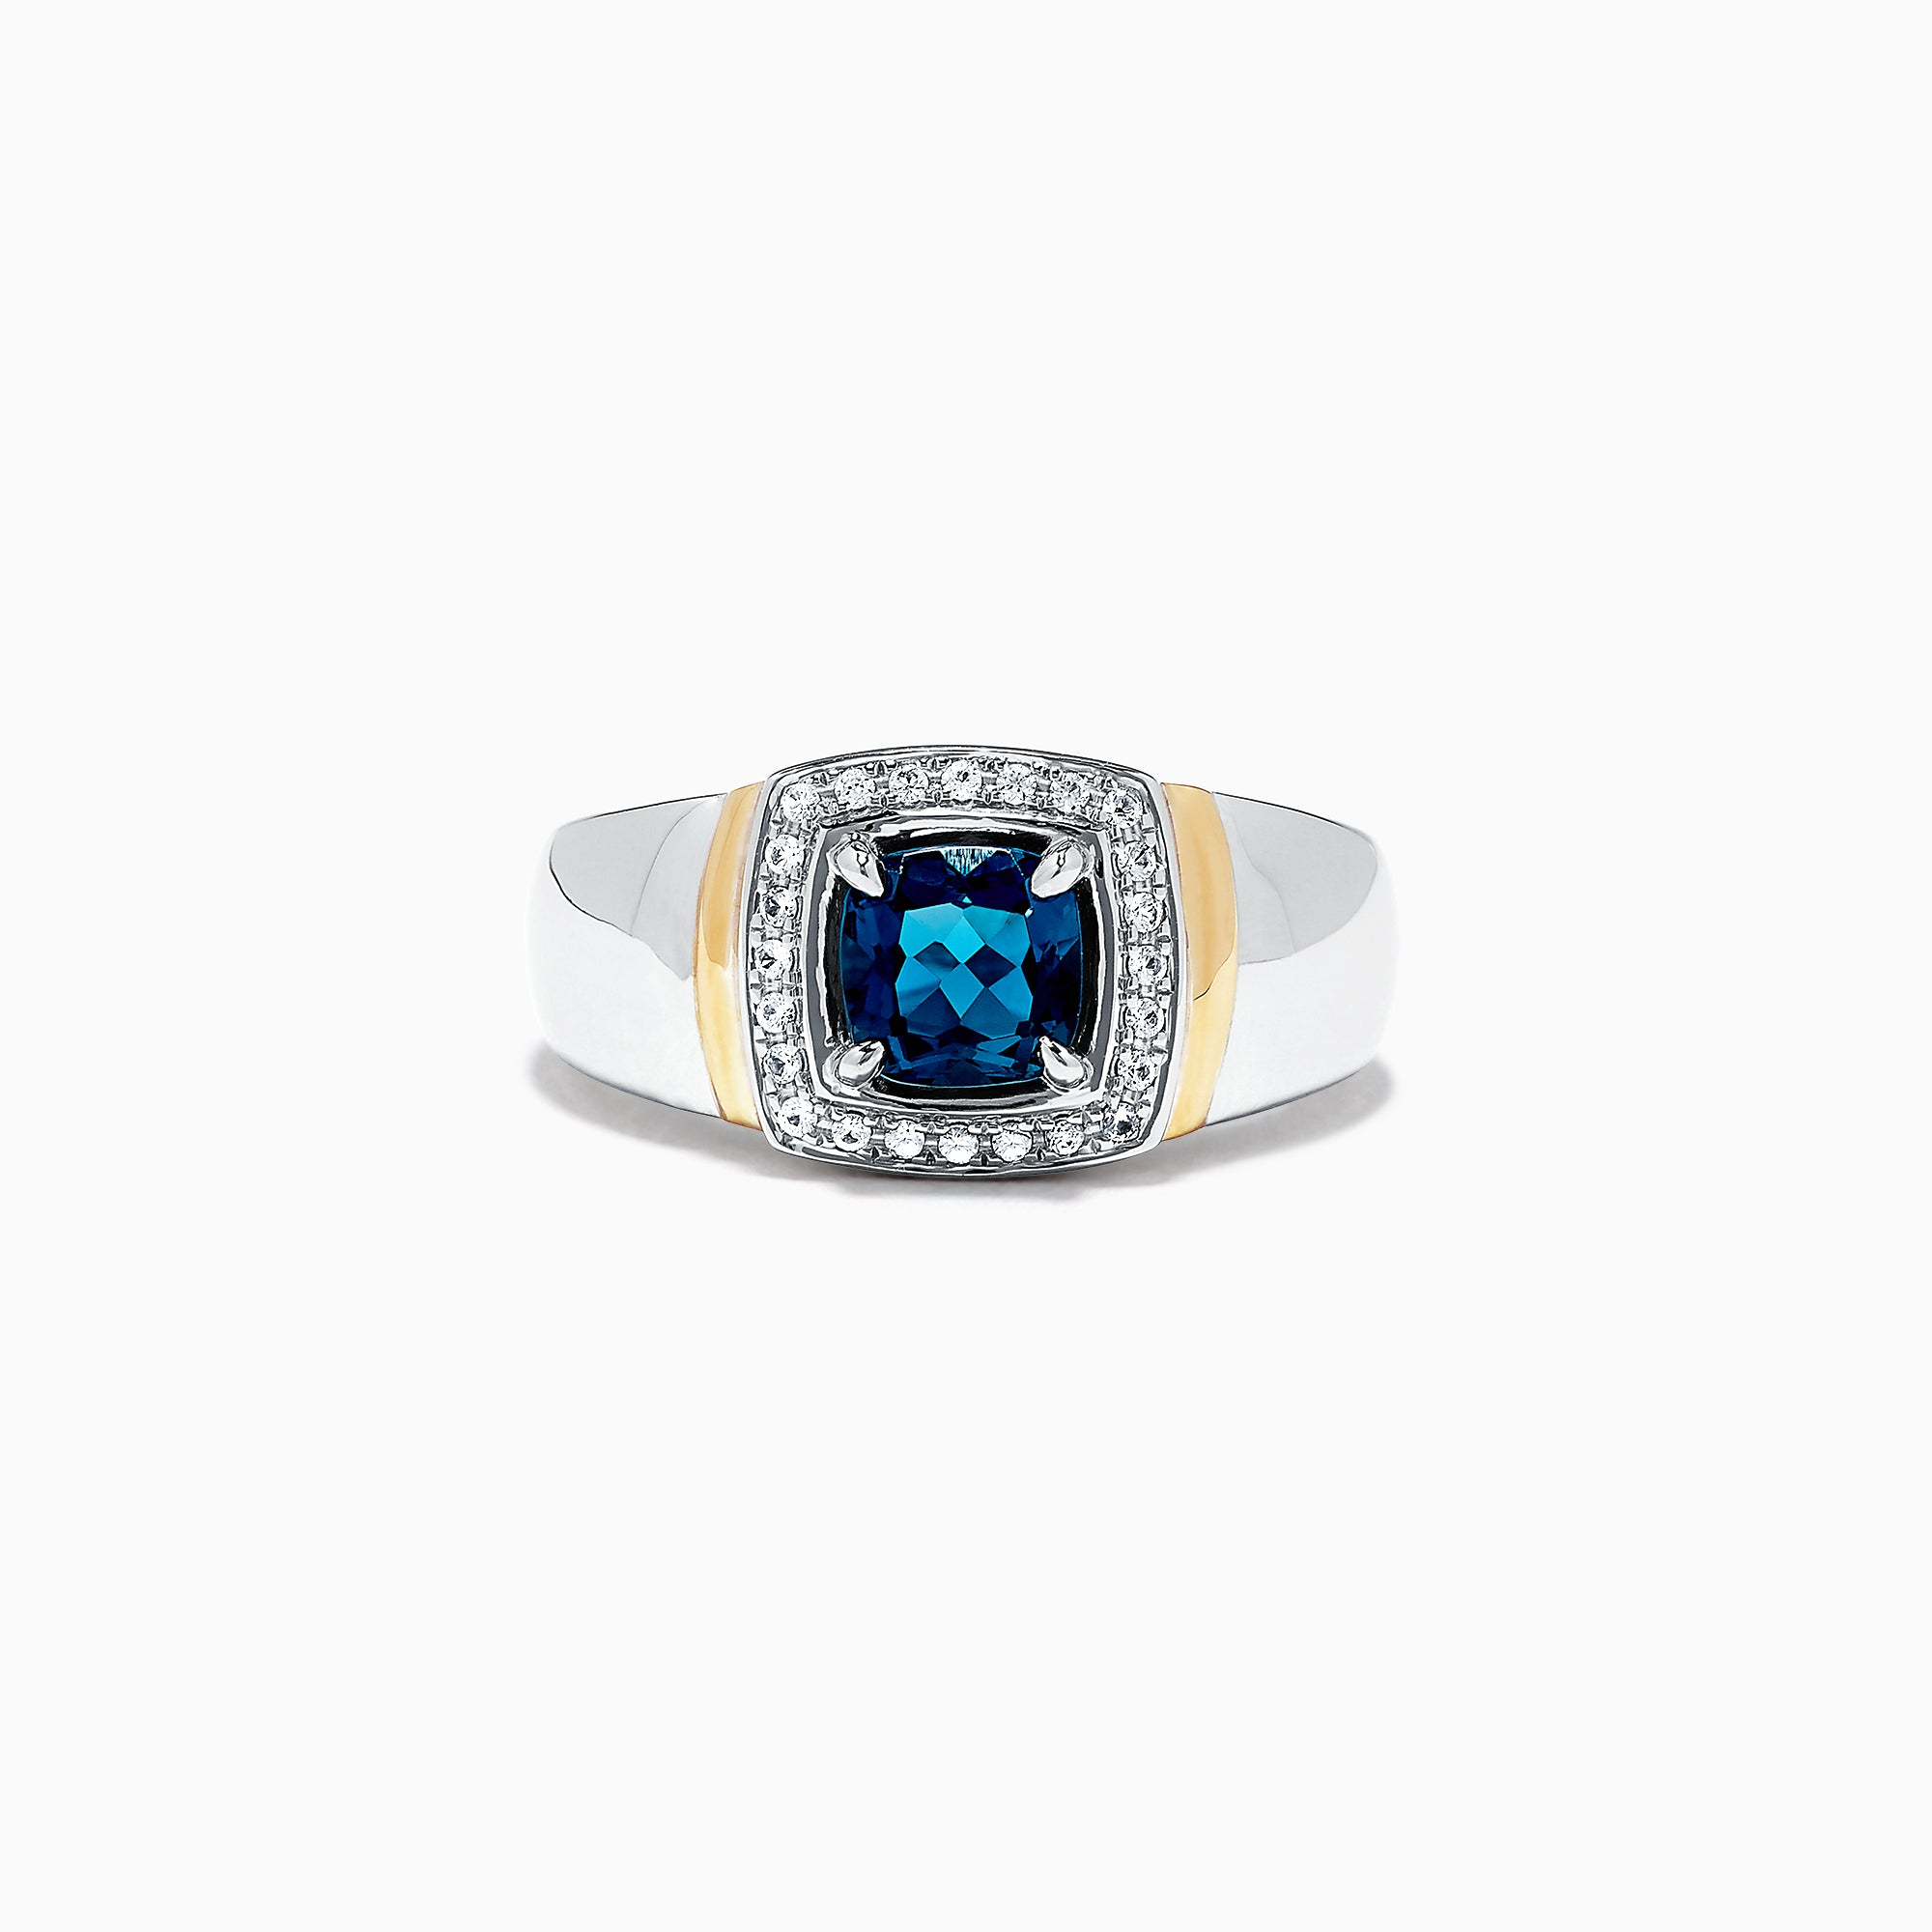 Effy Men's Sterling Silver Blue Topaz and White Sapphire Ring, 2.00 TCW